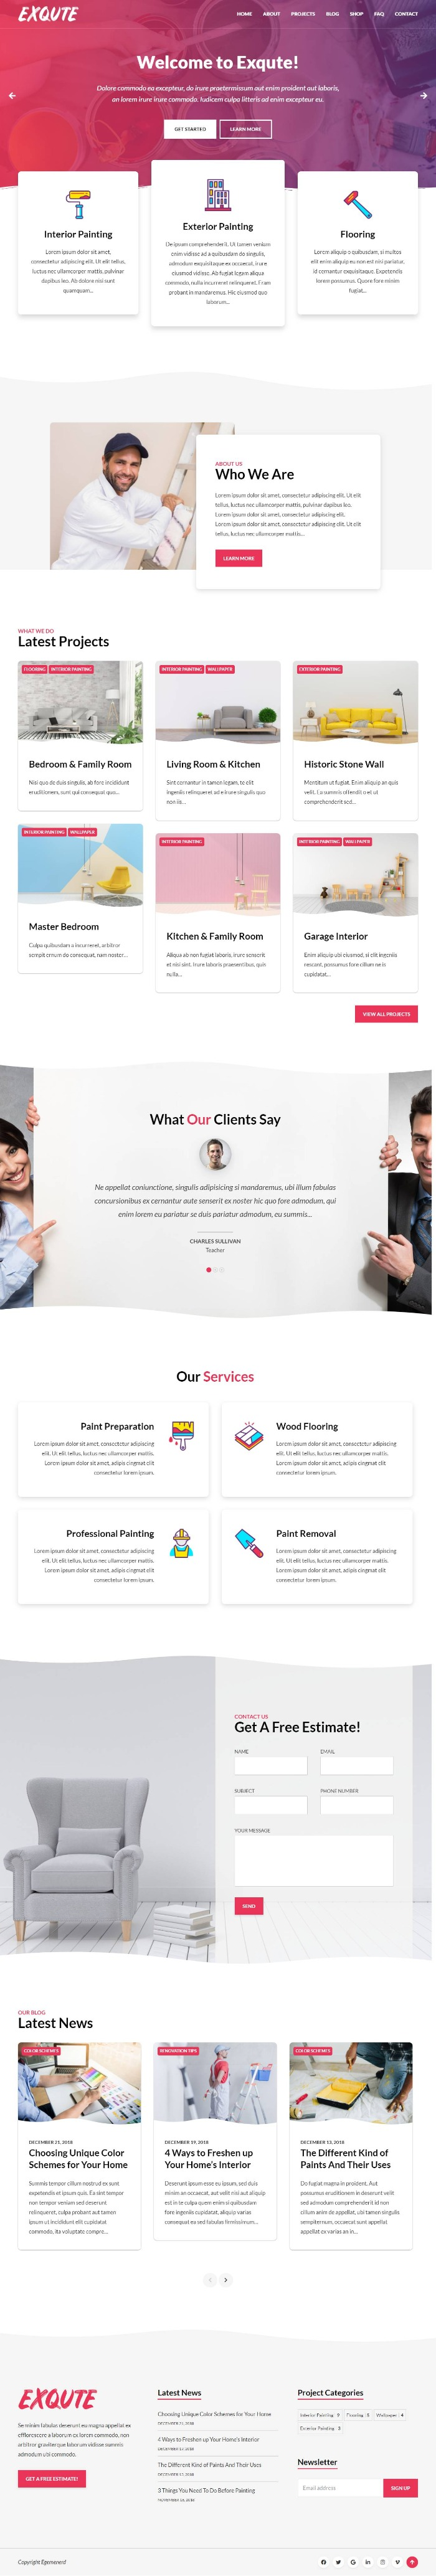 Mẫu Website Công Ty Xây Dựng - Exqute